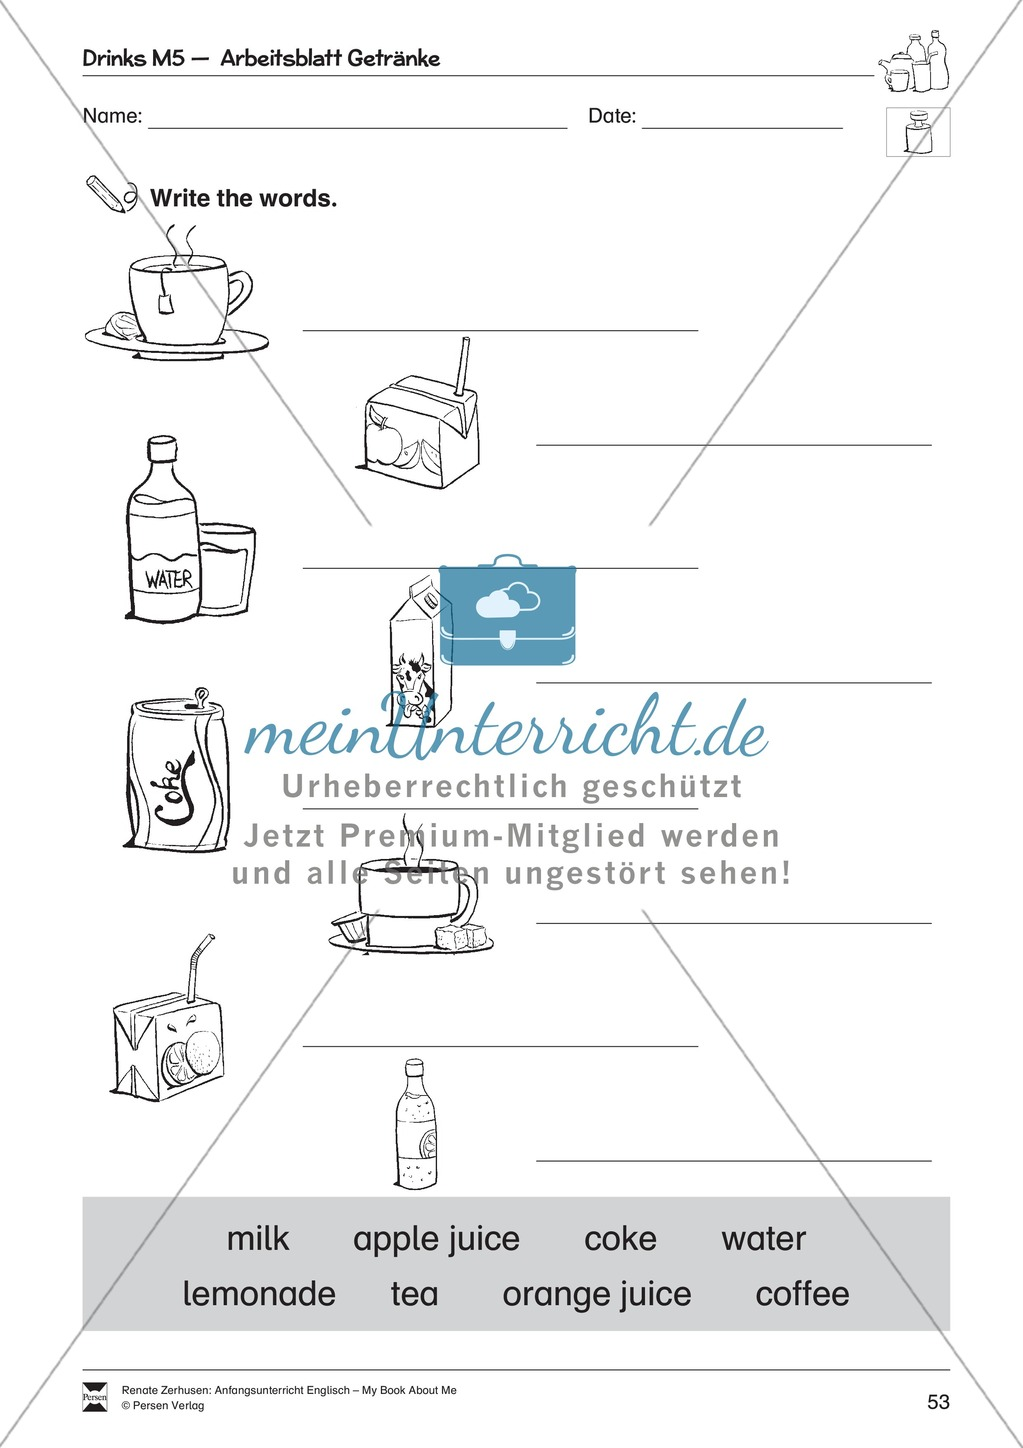 Drinks vocabulary: Worksheets on drinks (Binnendifferenziert) Preview 9